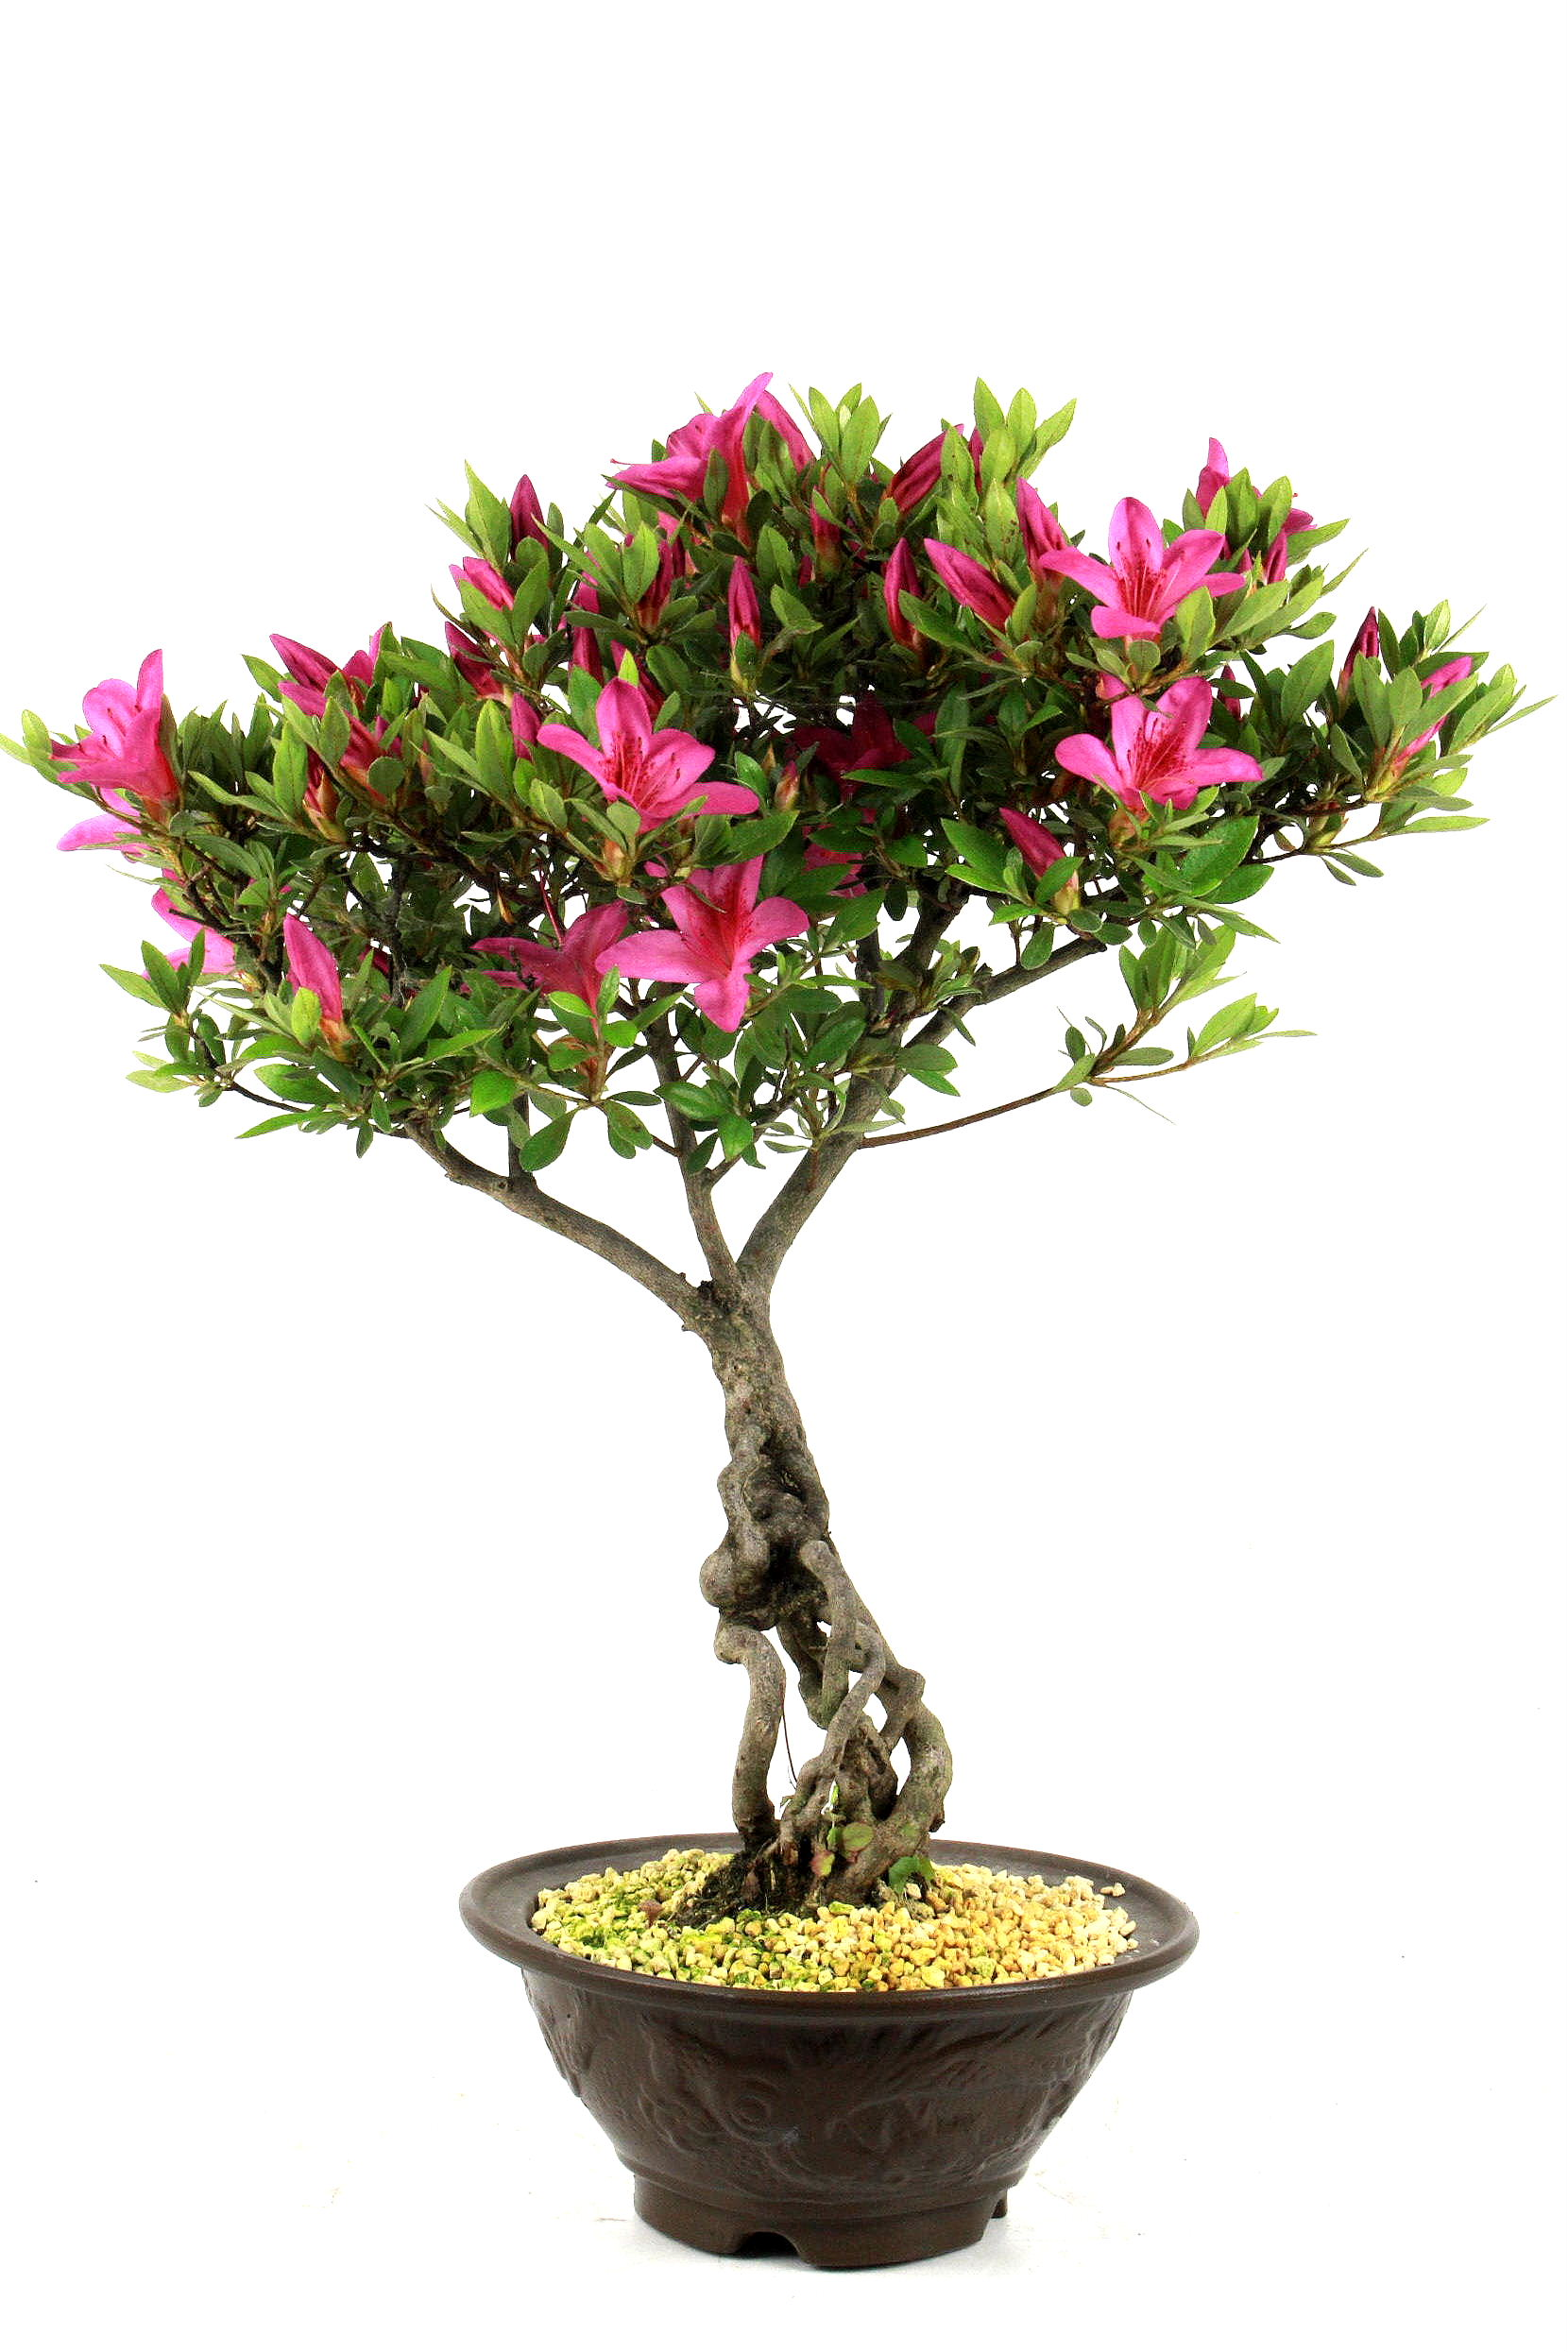 Azaleen bersicht onlineshop oyaki bonsai for Bonsai onlineshop